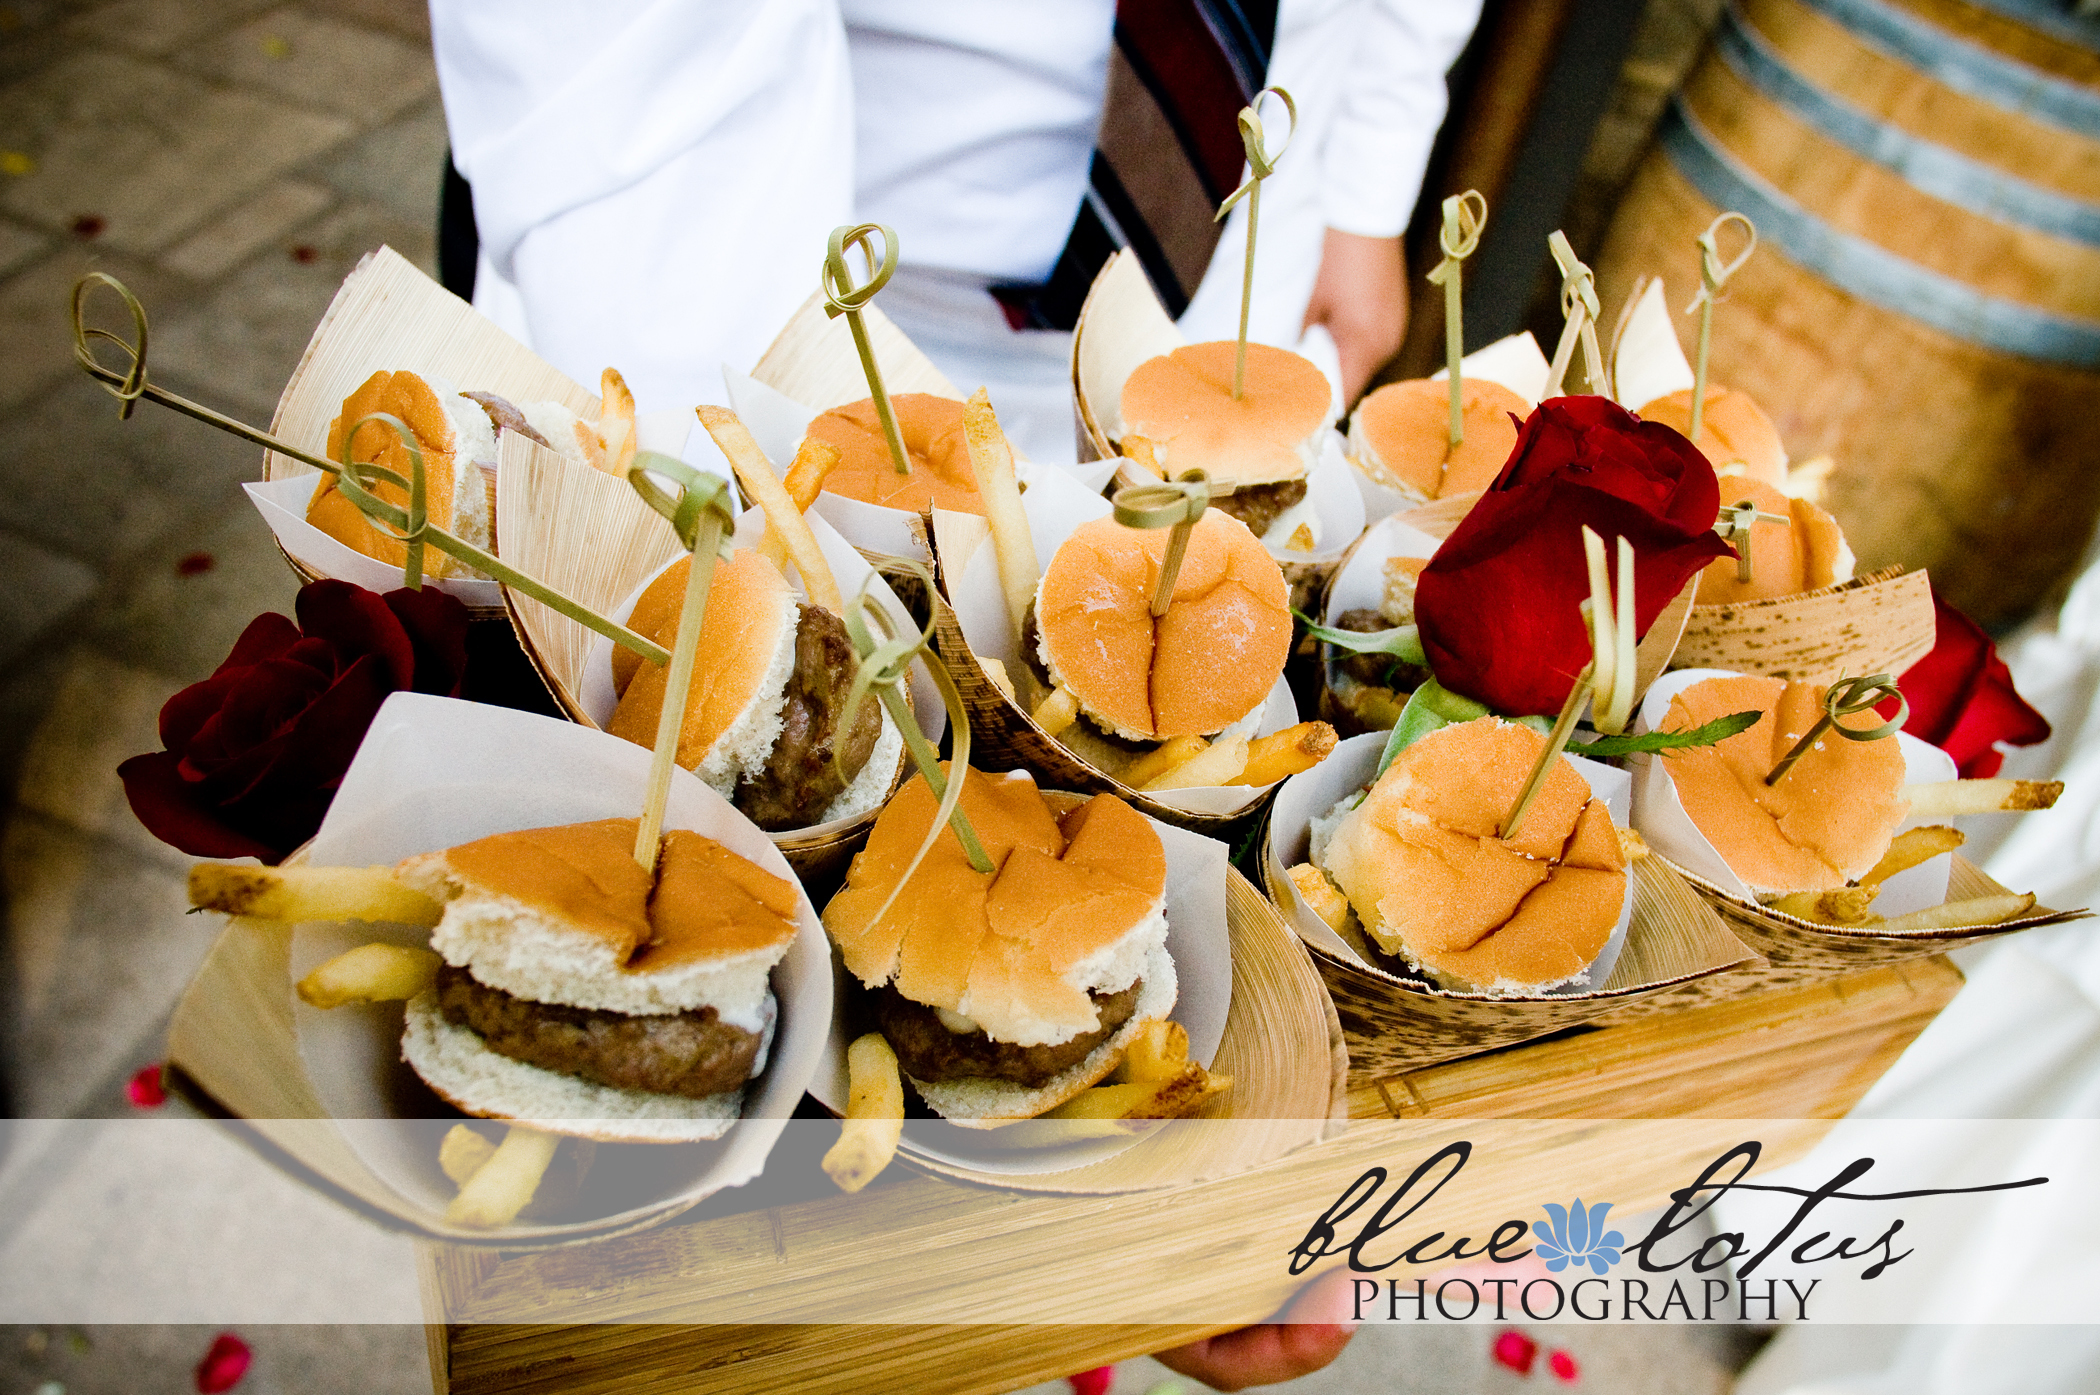 Reception, Flowers & Decor, Food, Mini, Inspiration board, French, Burgers, Fries